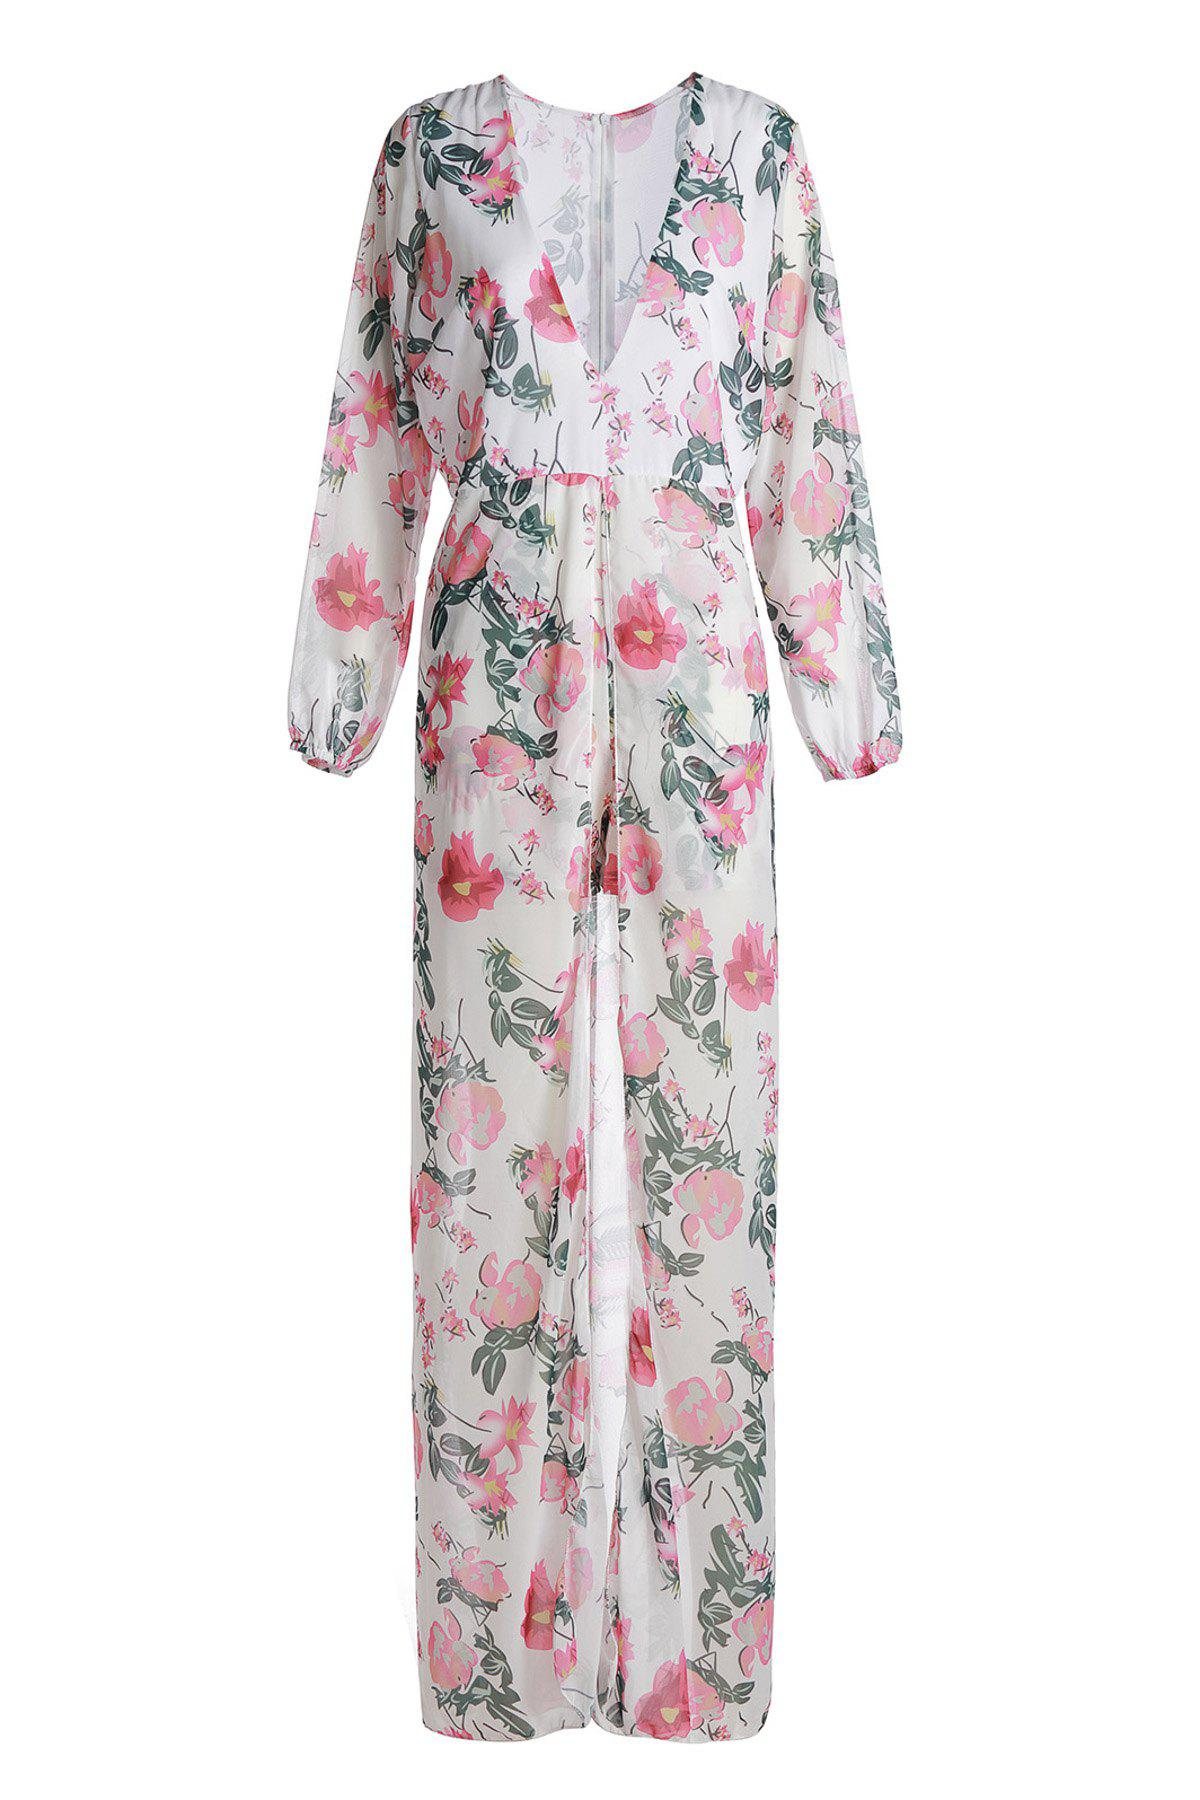 Trendy Multicolored Floral Printed Plunging Neck High Low Romper For Women - WHITE 2XL